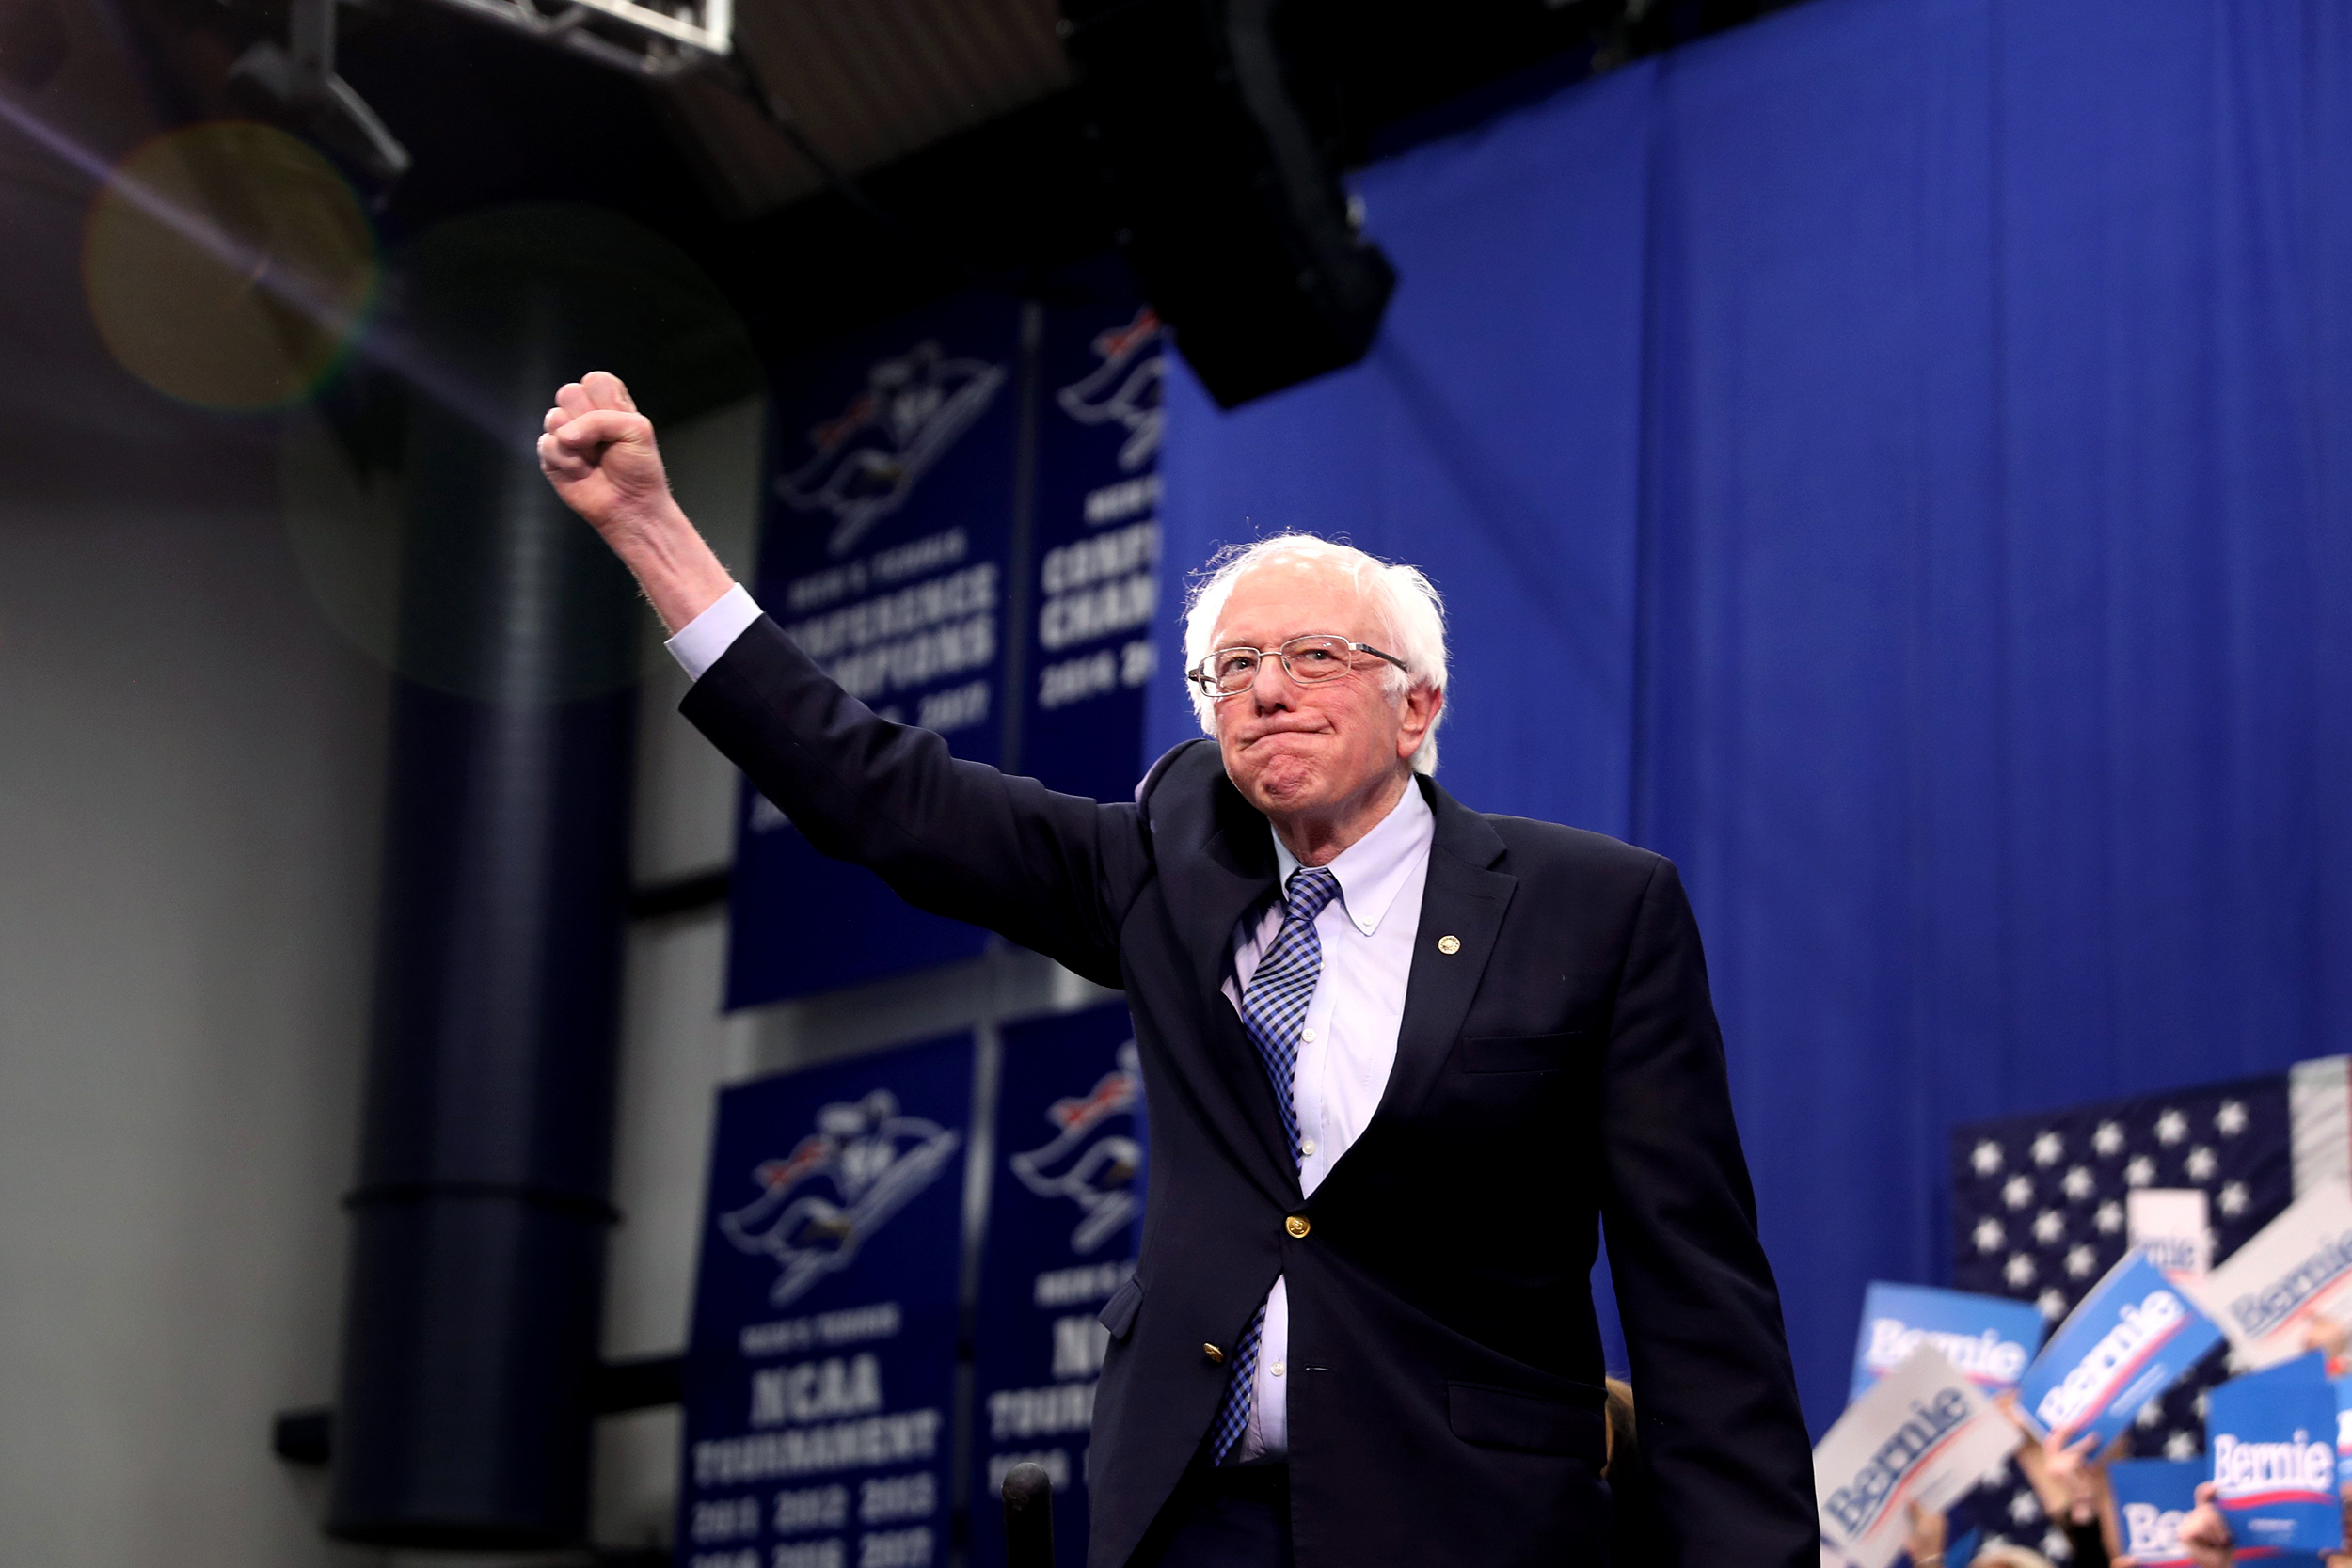 Bernie Sanders can beat Trump with his liberal vision for America